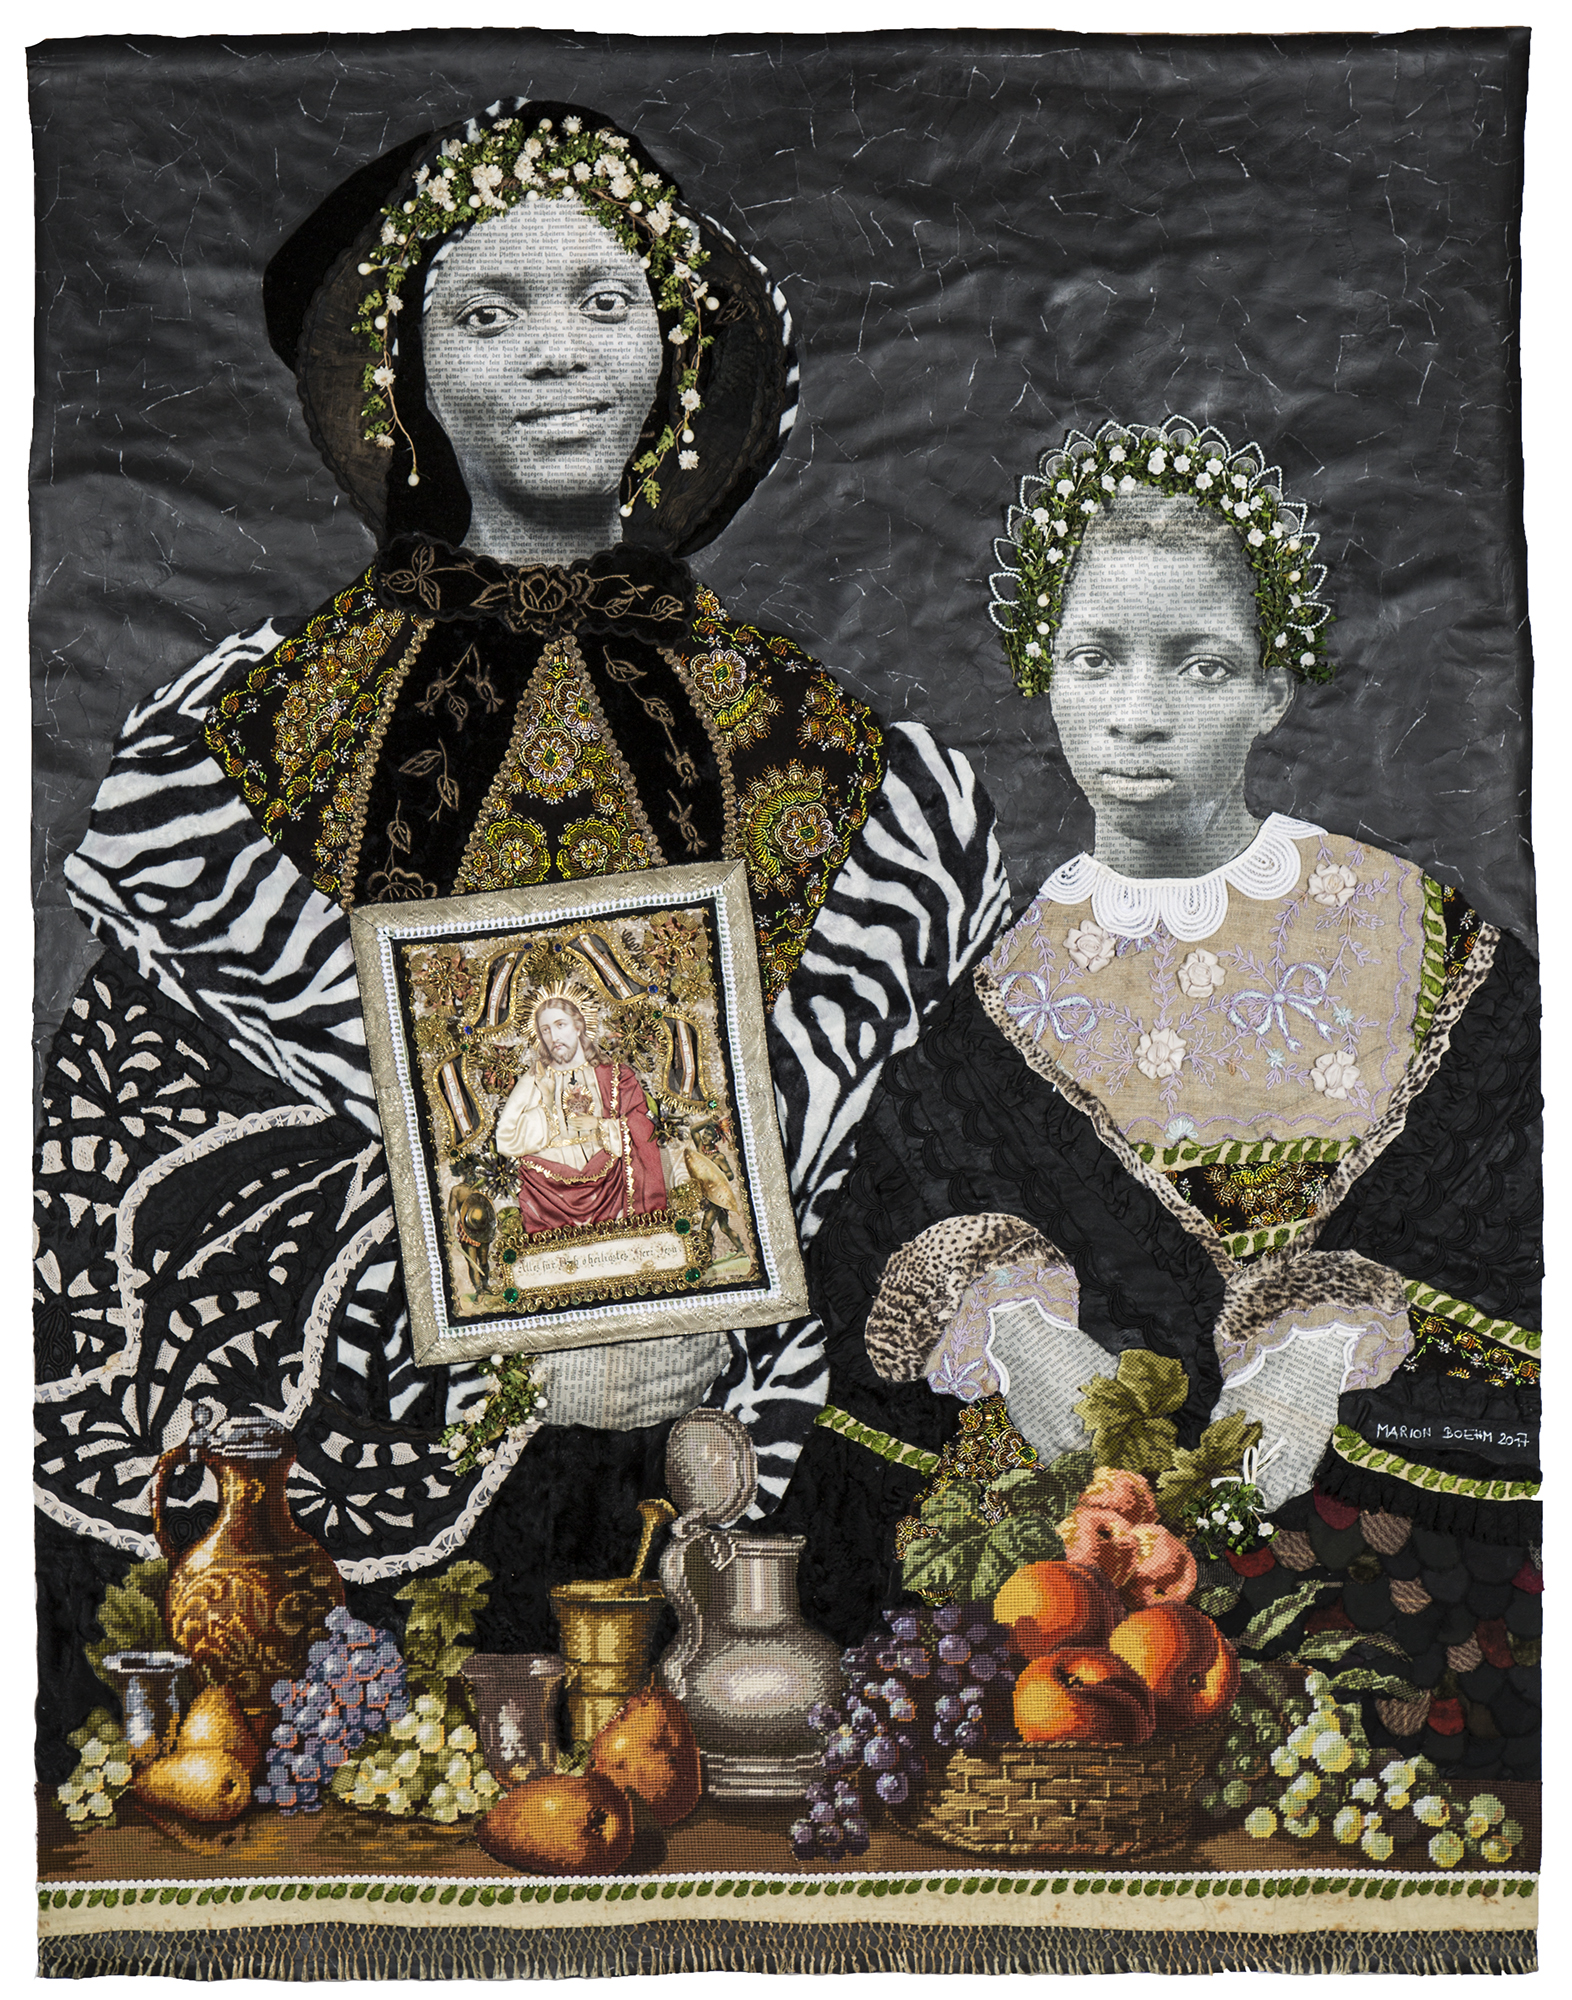 Marion Boehm, Holy Shine - Image courtesy ArtCo Gallery